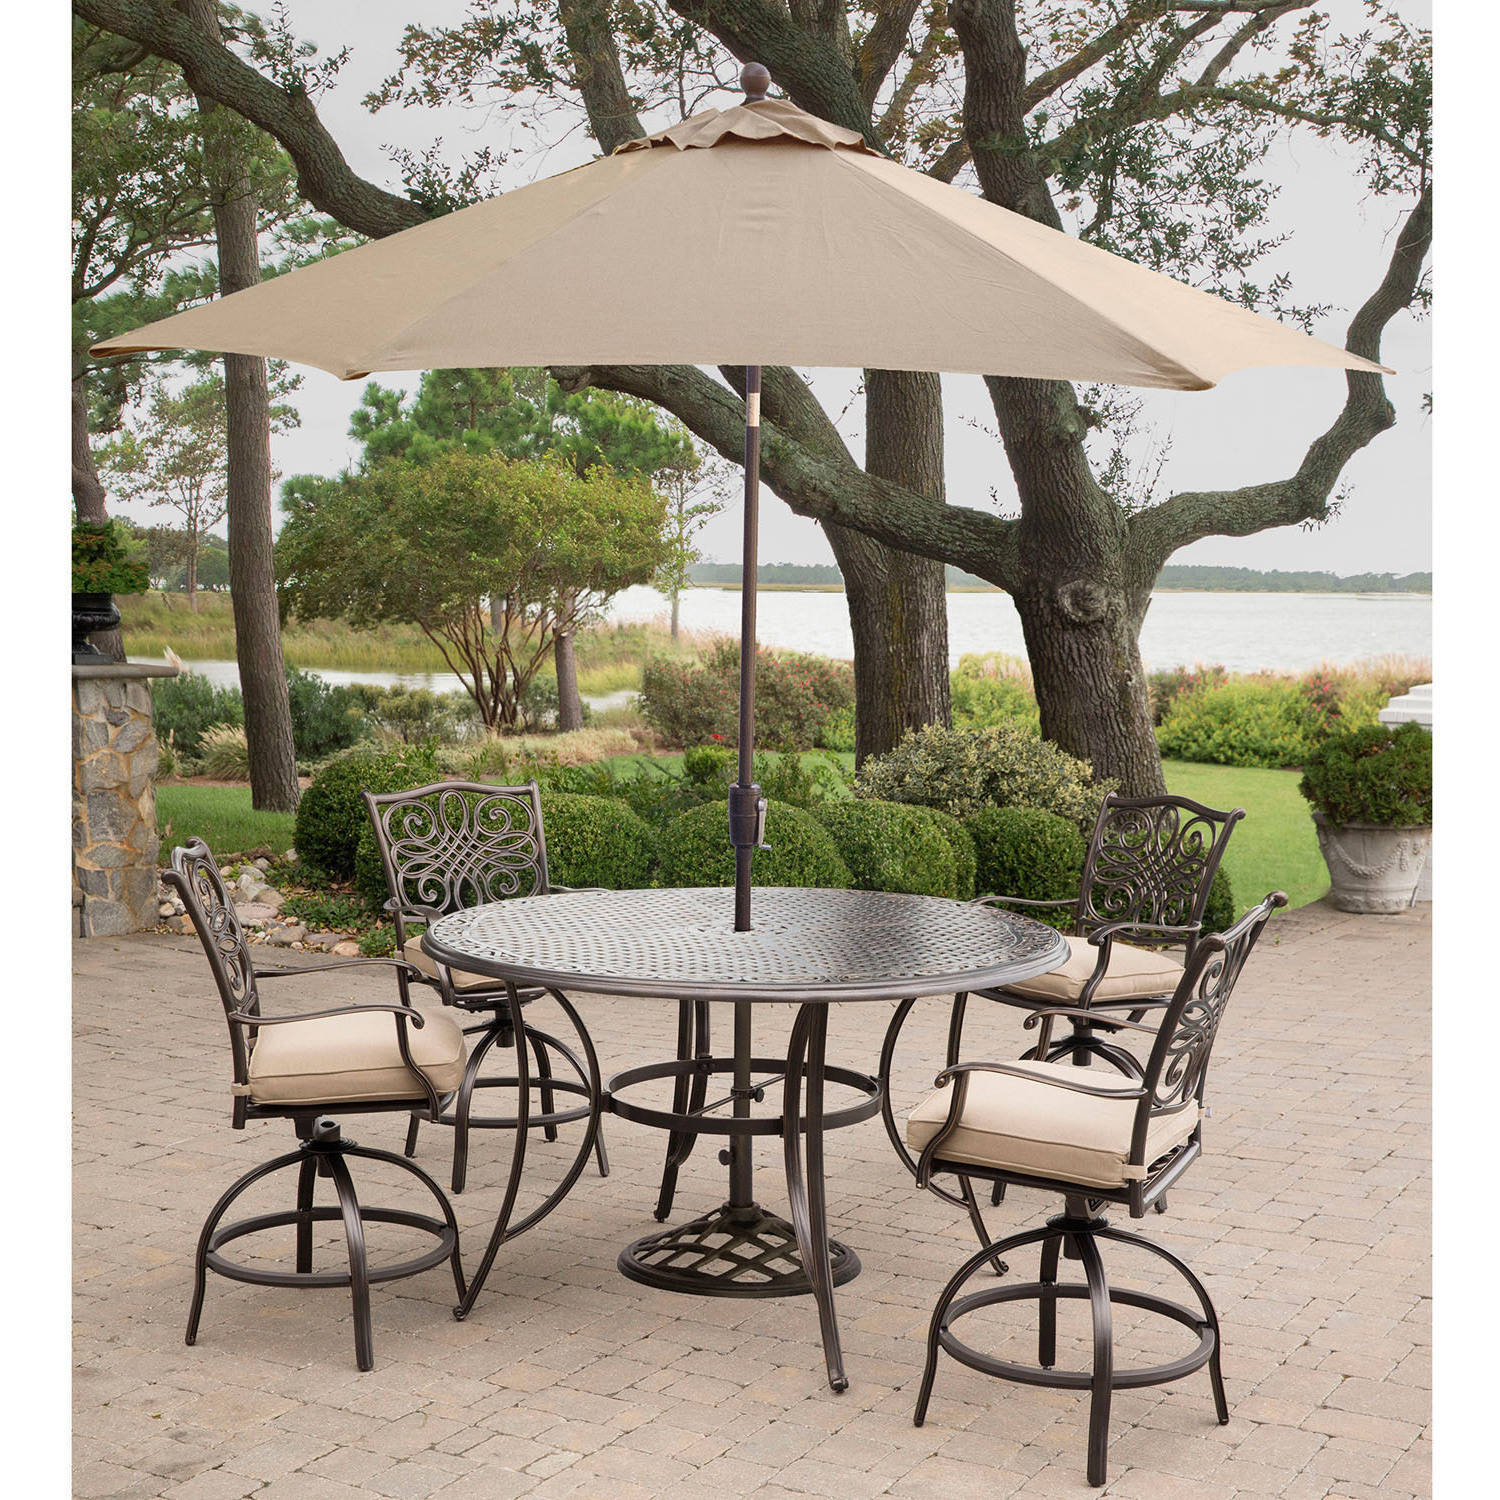 Hanover Traditions 5-Piece Cast-Top High Dining Set with Umbrella and Stand